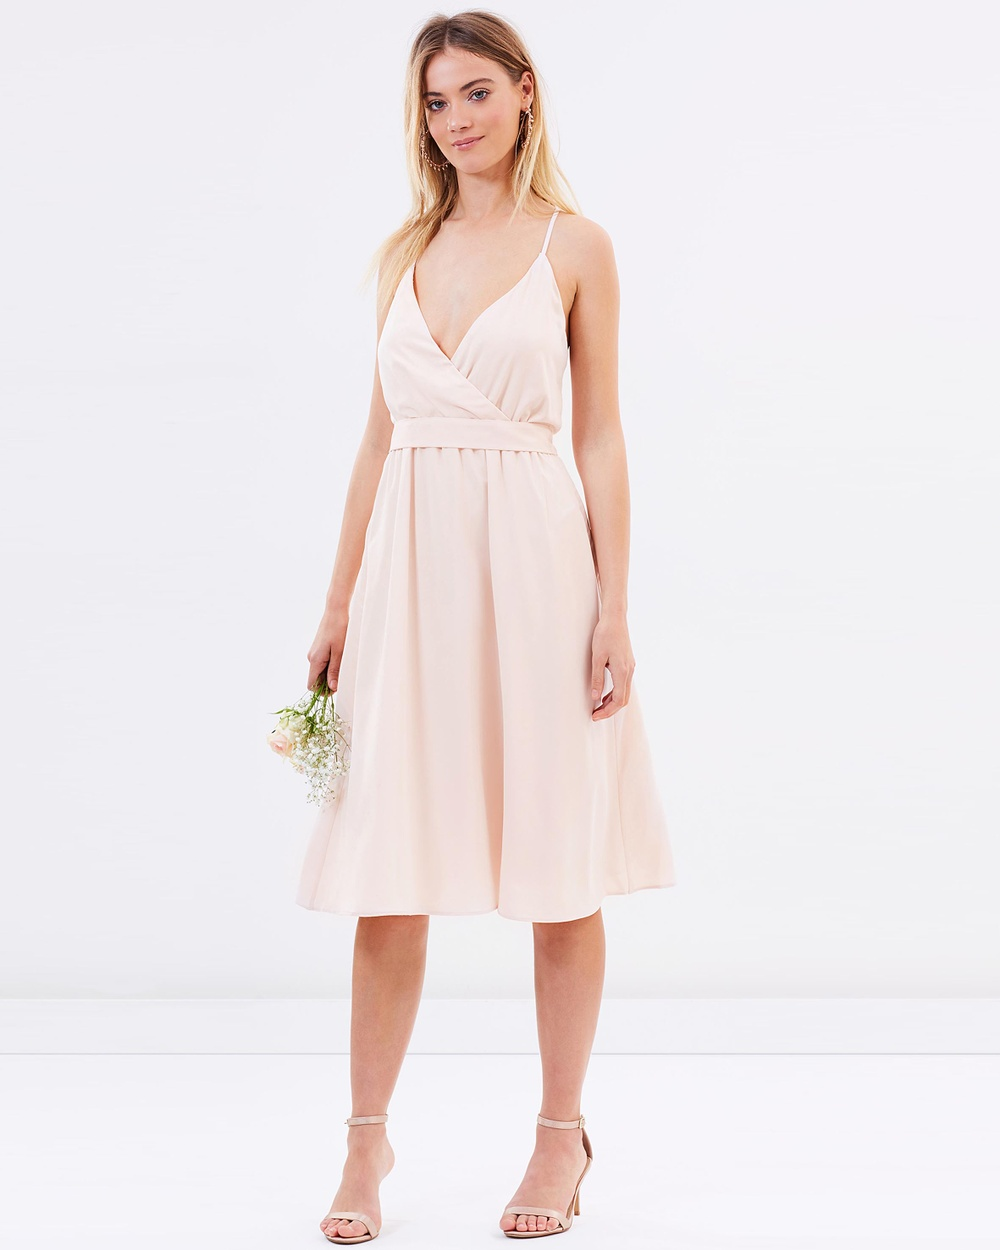 Atmos & Here ICONIC EXCLUSIVE Arabella Cross Back Dress Bridesmaid Dresses Champagne ICONIC EXCLUSIVE Arabella Cross Back Dress